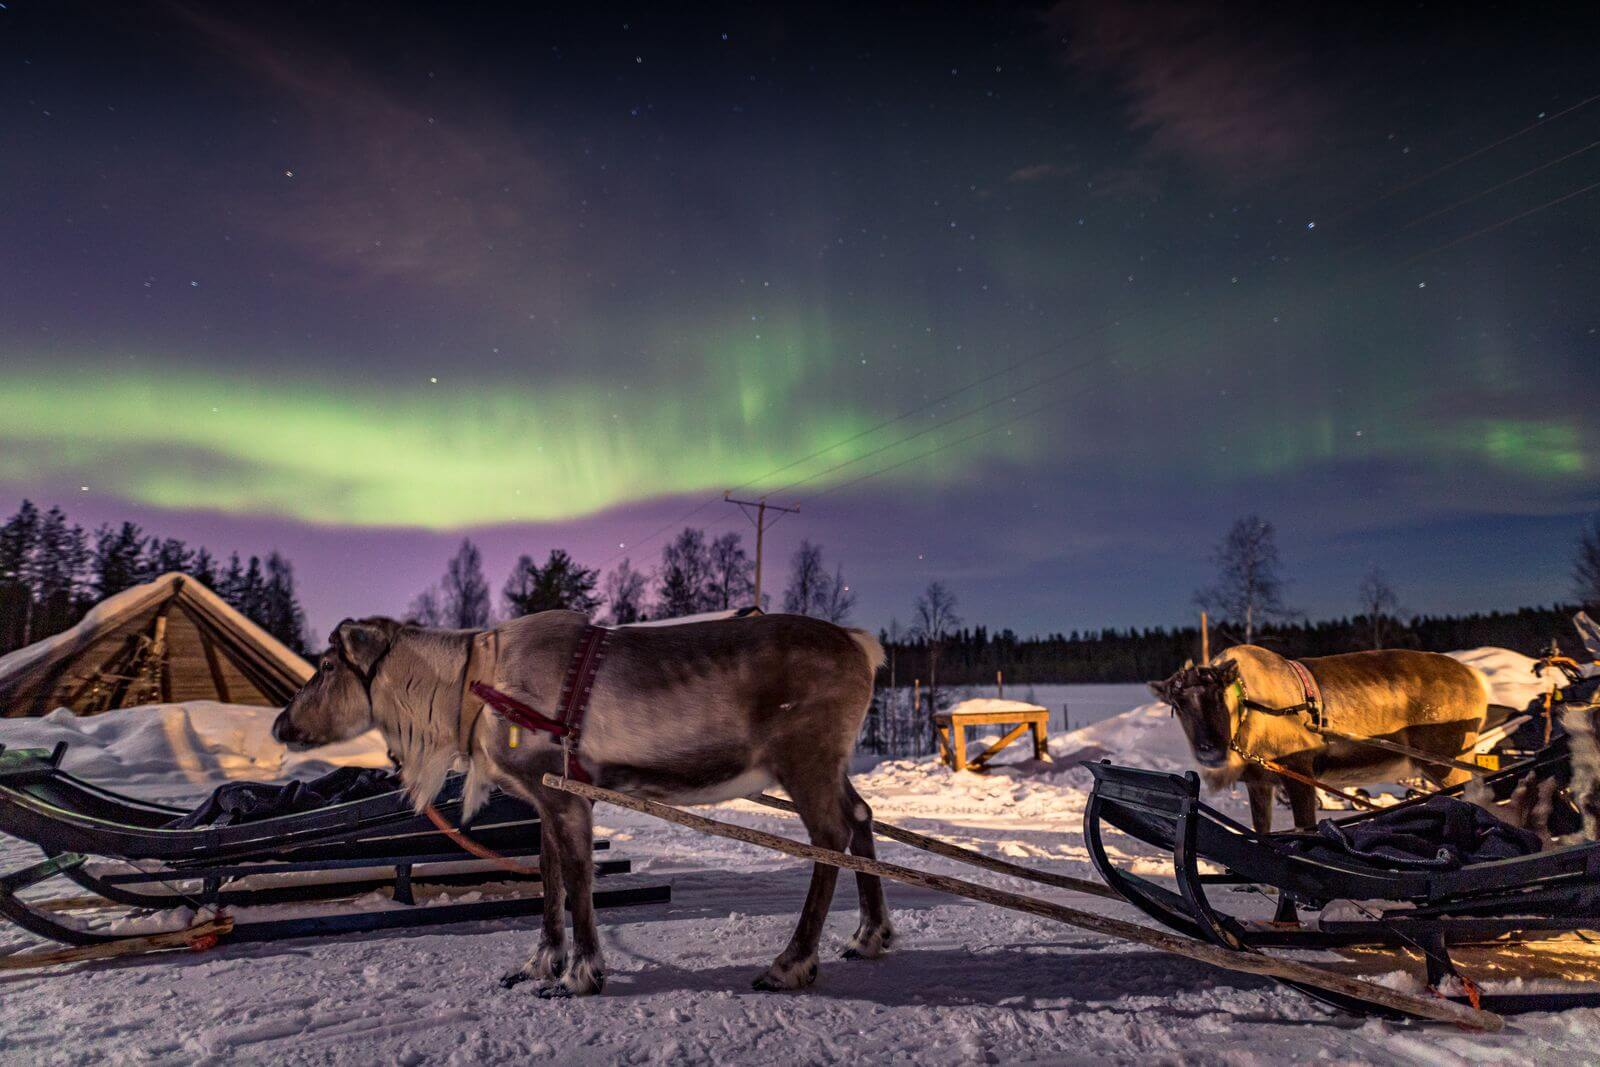 Reindeer sleigh ride is an essential Finish experience. Feel the thrill of skimming through snowfields, and get your Reindeer Driving license!